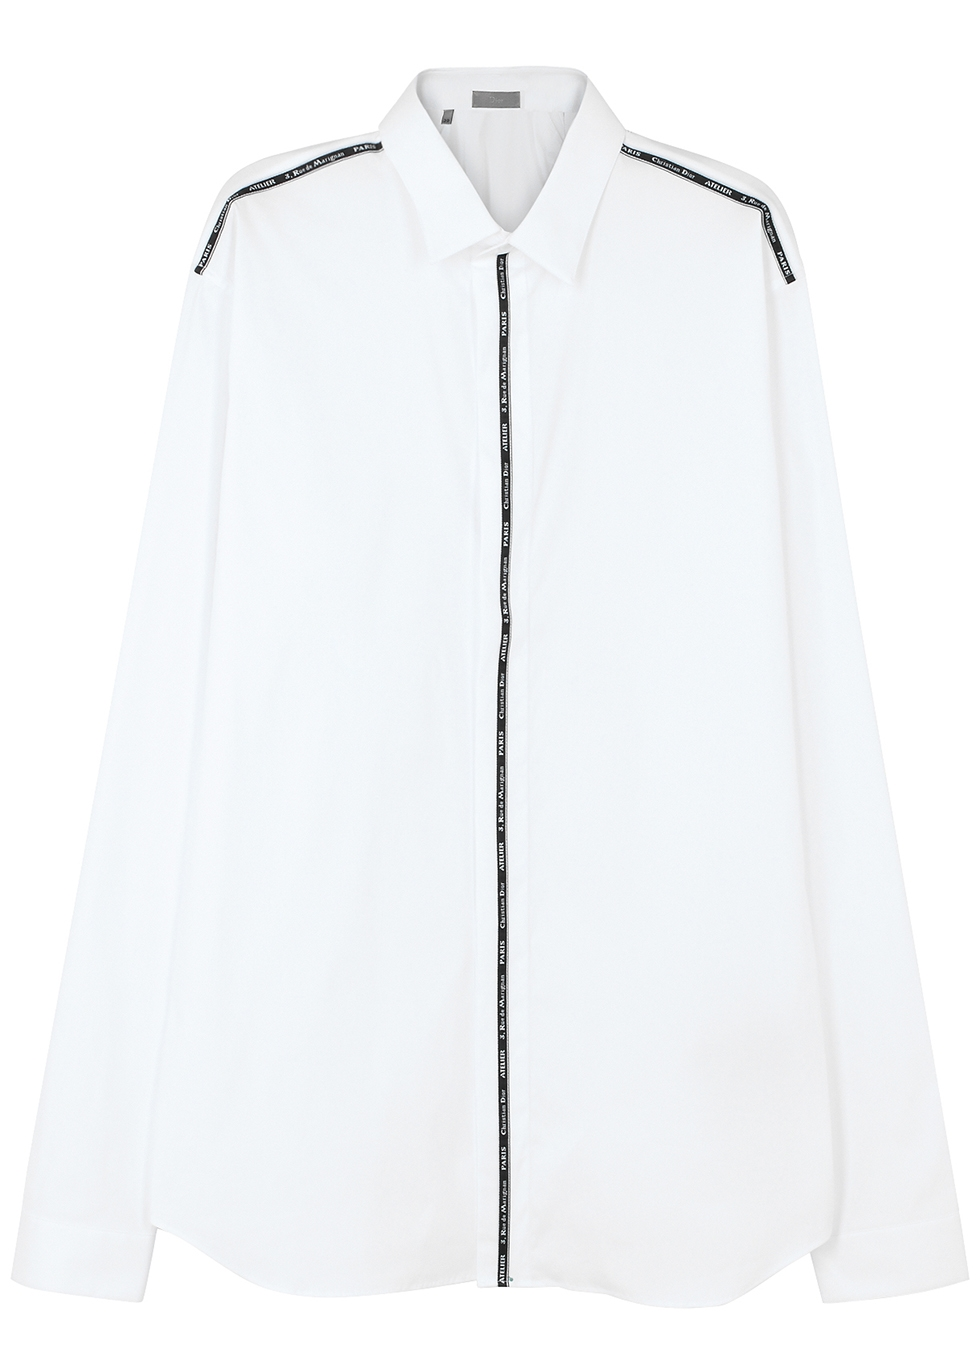 DIOR HOMME Christian Dior Atelier Ribbon Cotton-Blend Shirt in White